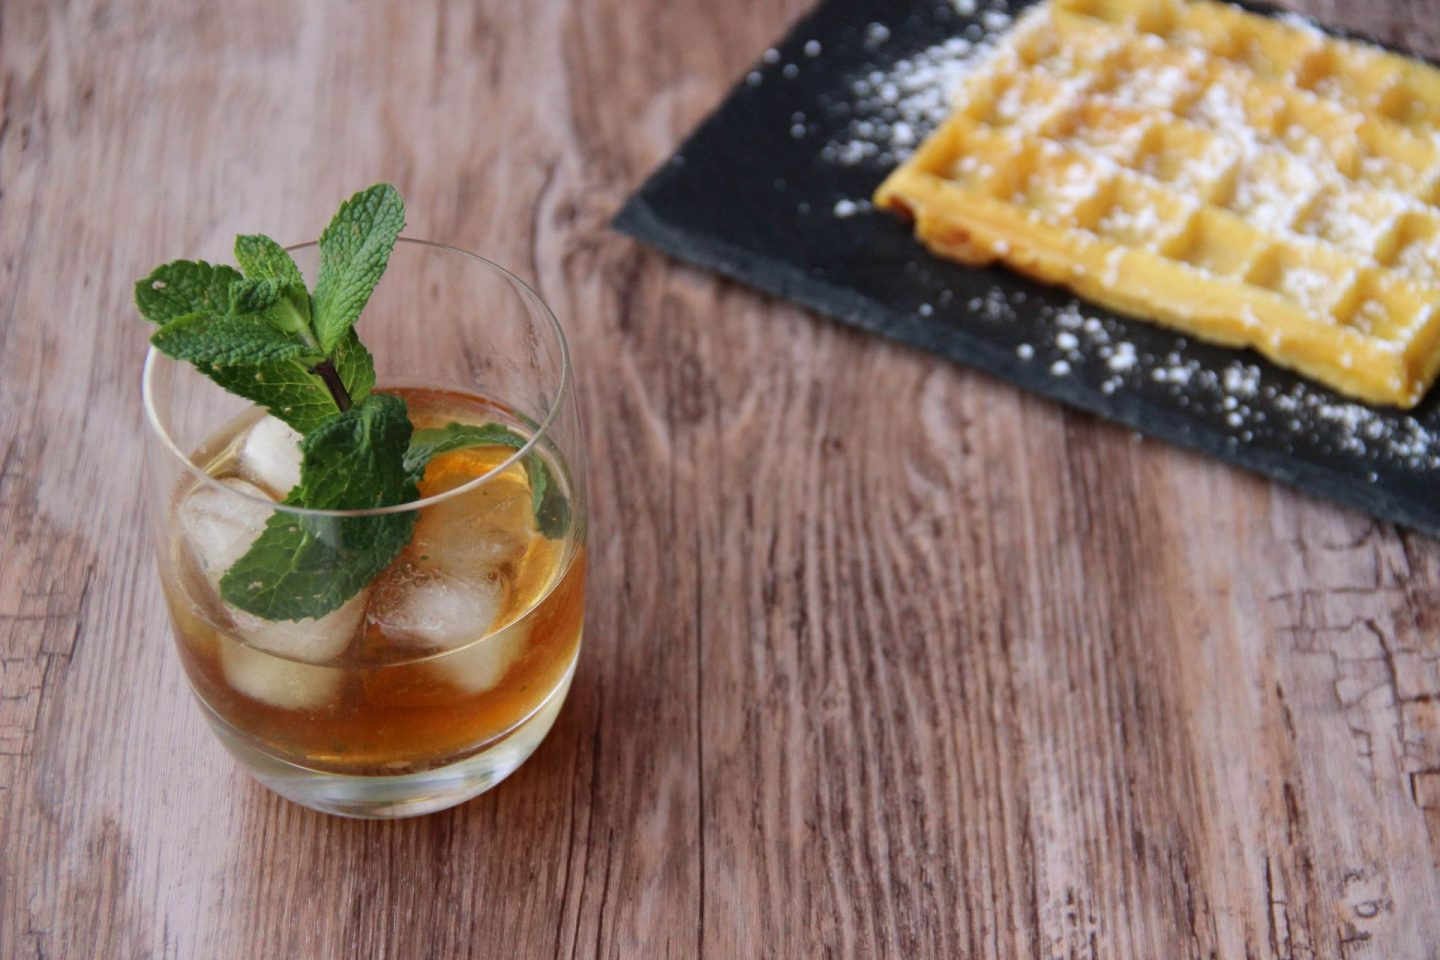 Chilling out cocktail and recipes pumpkin wafles and Brandy smash cocktail